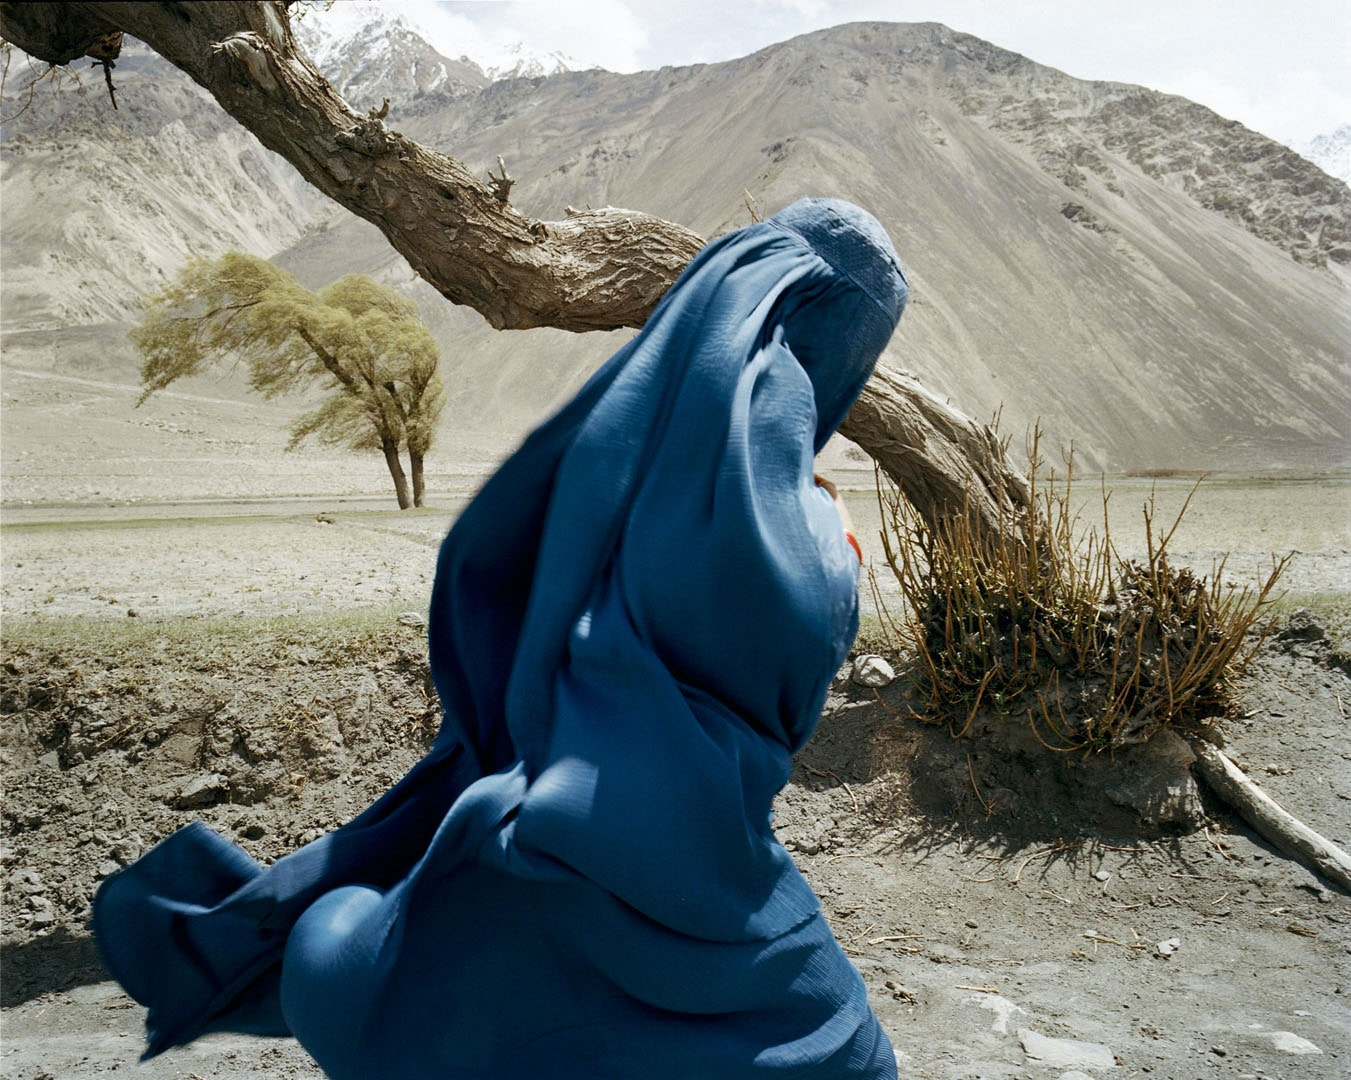 A veiled Sunni woman made her way back to mainland Afghanistan from the desert of the Wakhan Corridor.